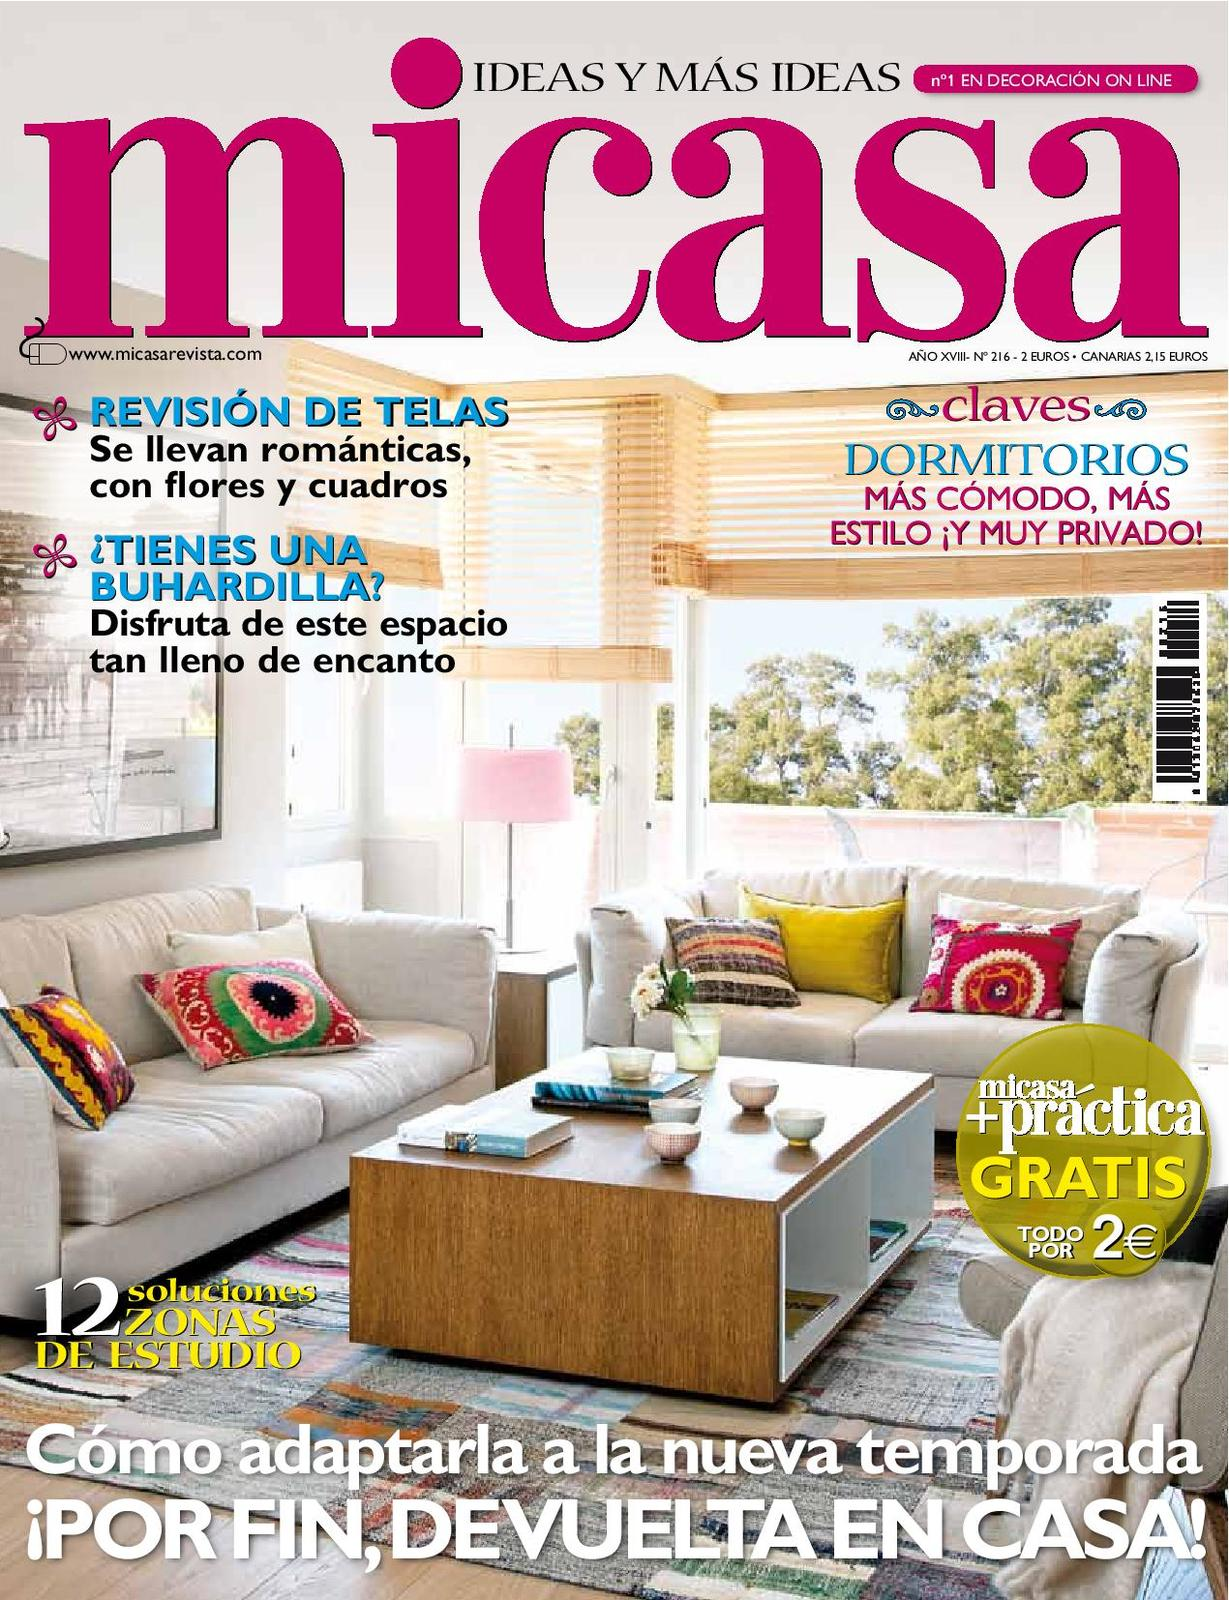 https://www.nobohome.com/wp-content/uploads/2012/07/Cover-Micasa-page-COVER.jpg